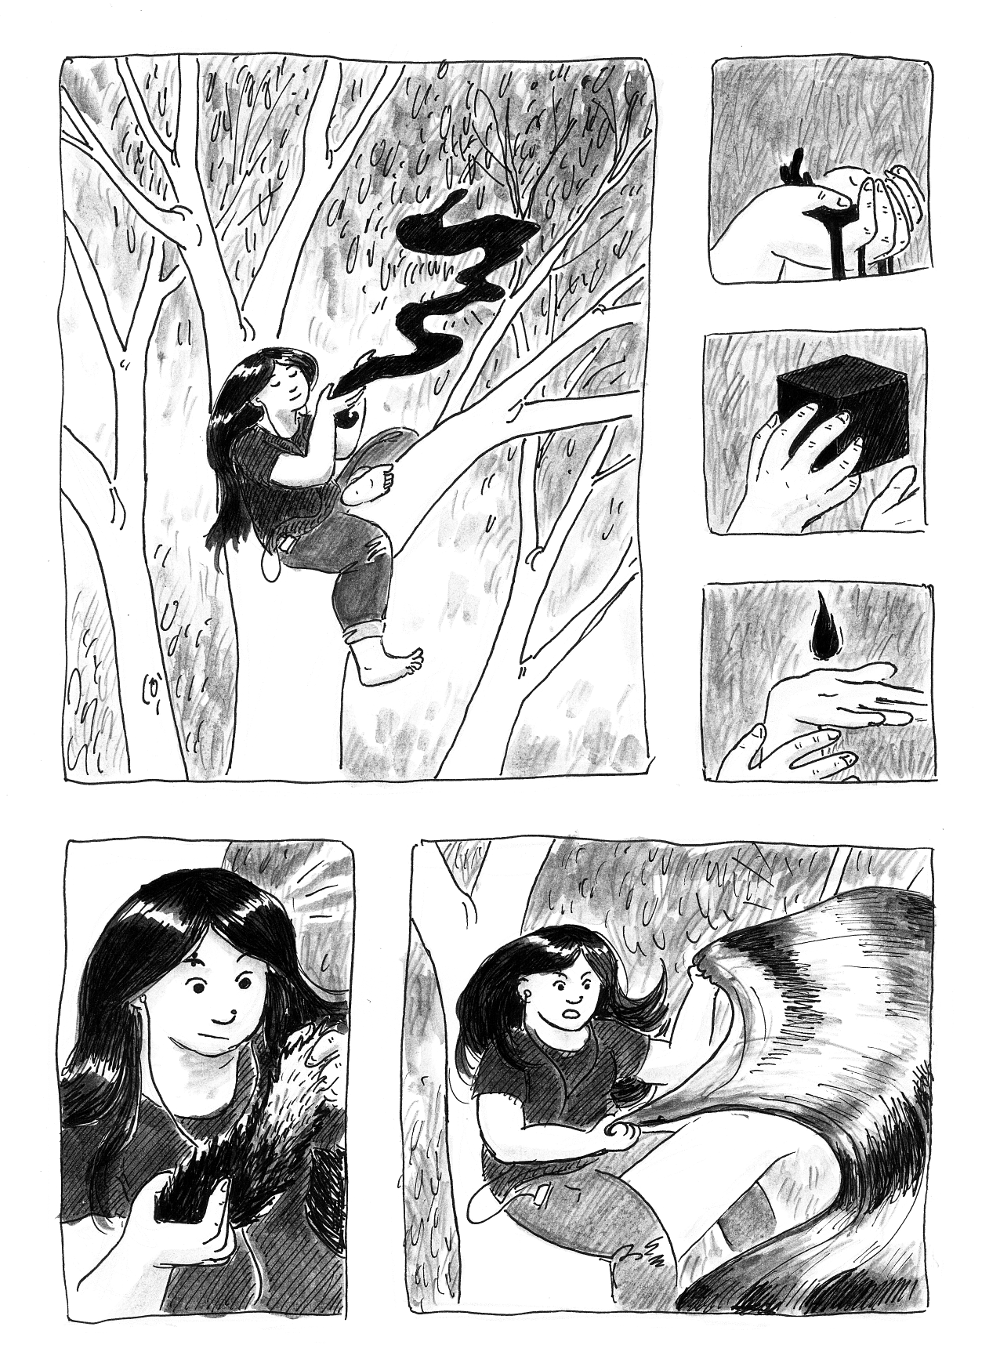 NOTE: THIS COMIC IS IN BLACK AND WHITE